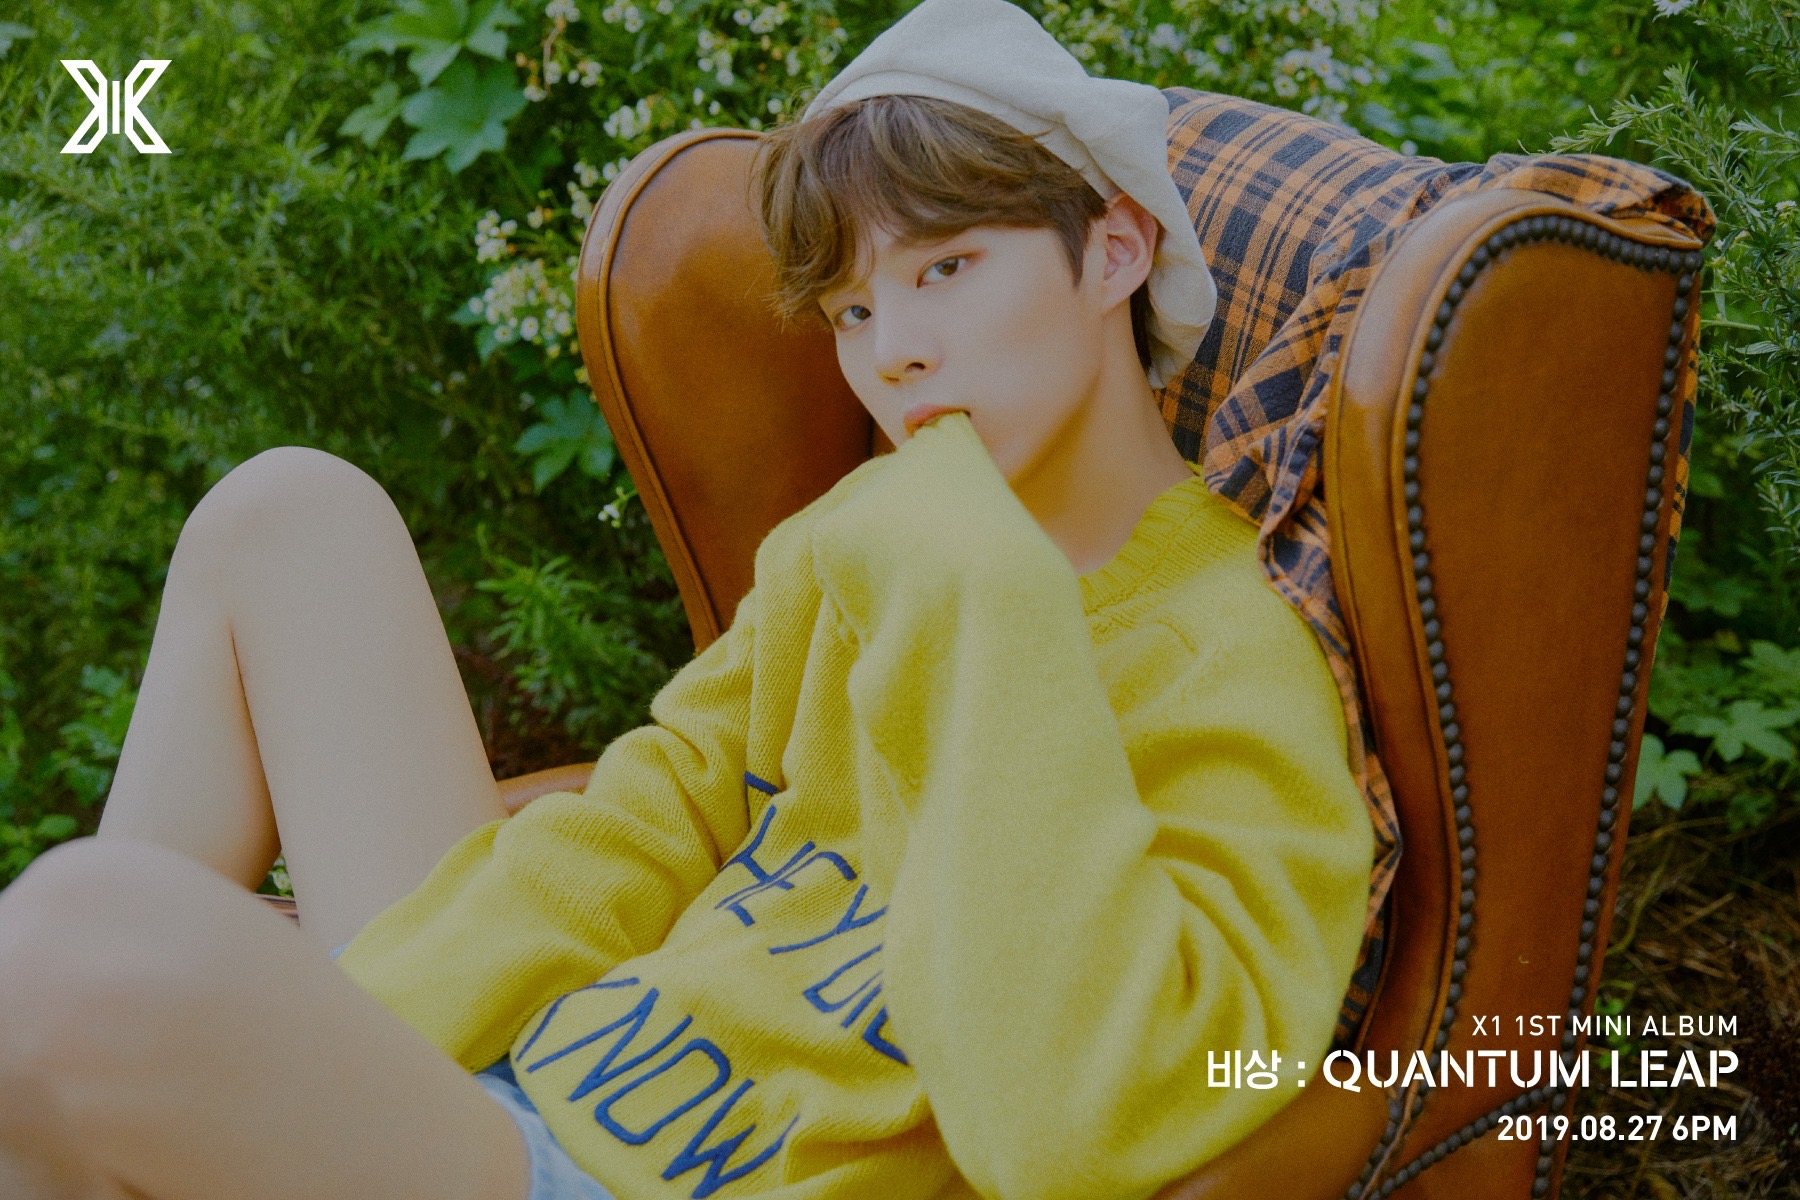 Here Are All Concept Photos From X1s 1st Mini Album